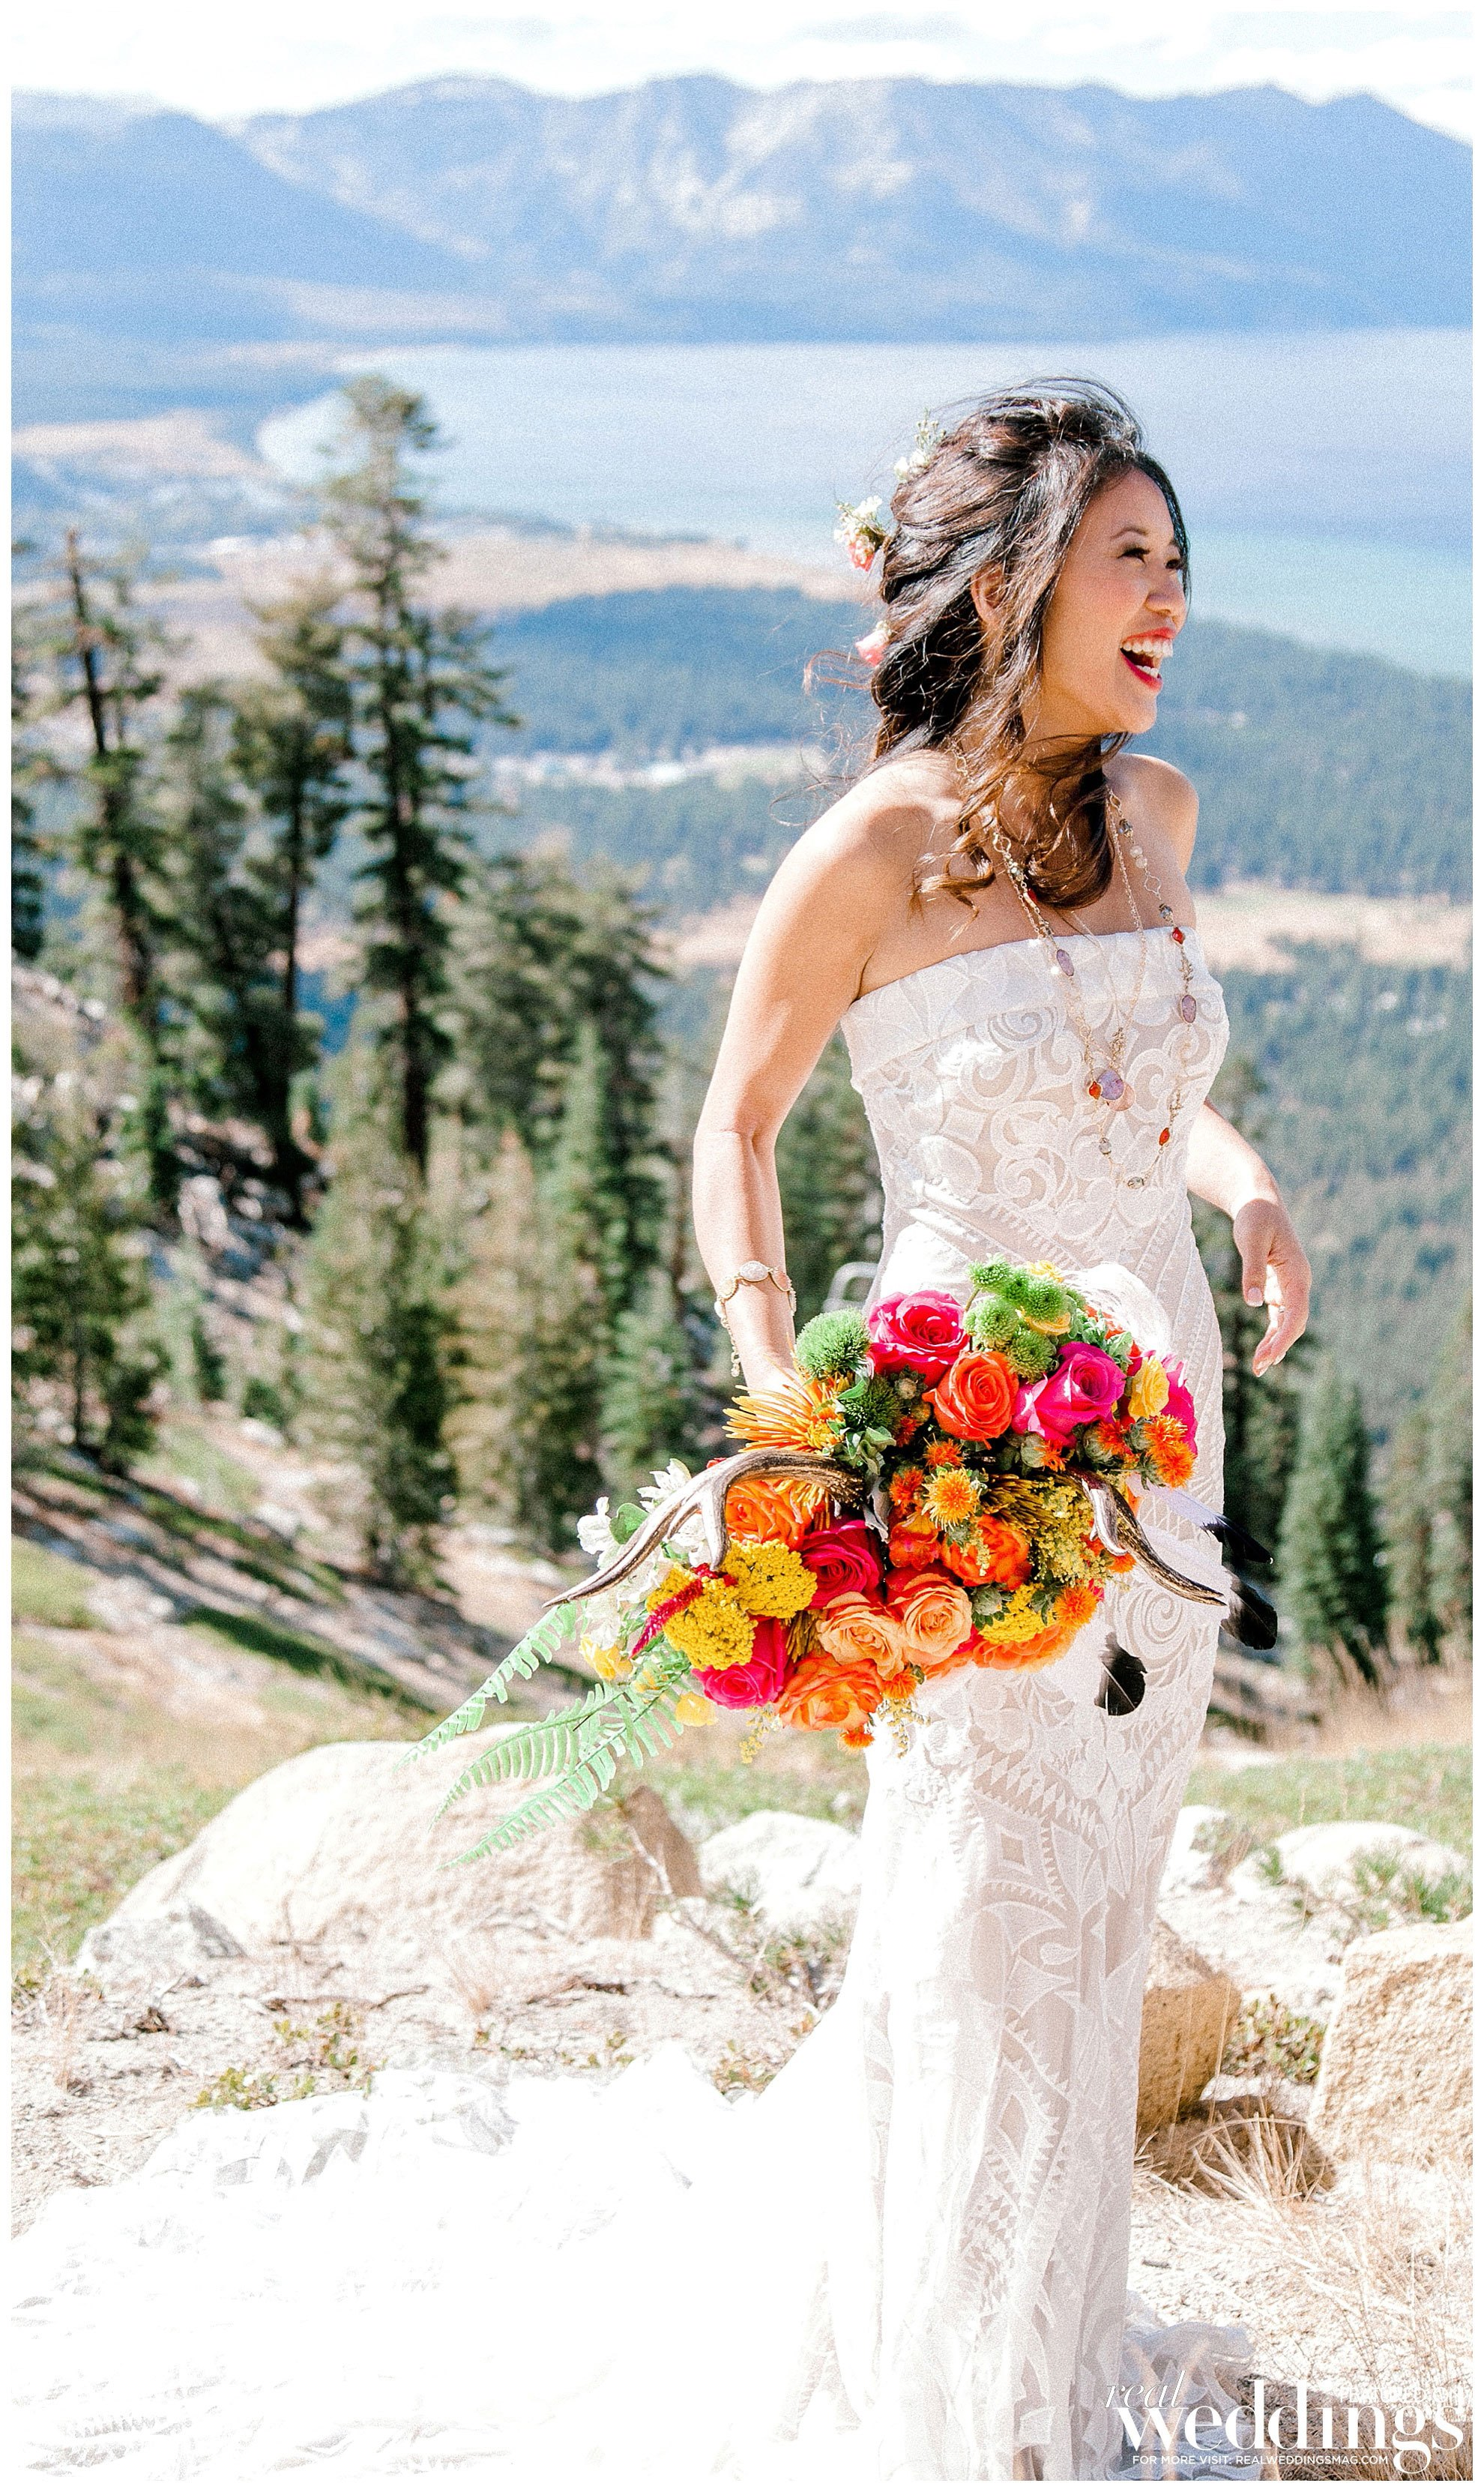 Kathryn-White-Photography-Sacramento-Real-Weddings-Magazine-In-The-Clouds-Layout_0001.jpg